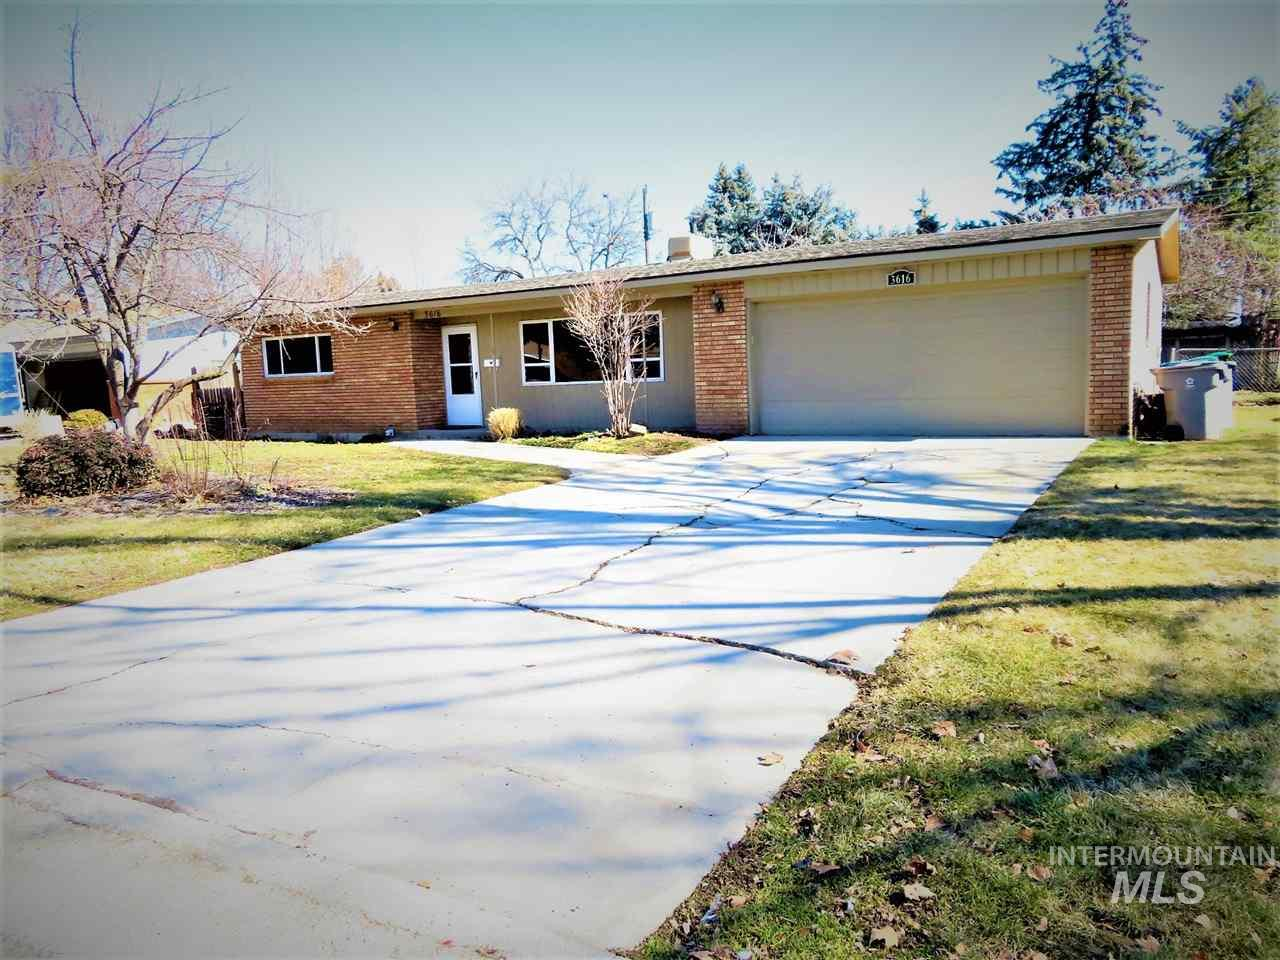 3616 N Cabarton Ln, Boise, Idaho 83704, 3 Bedrooms, 2 Bathrooms, Rental For Rent, Price $1,600, 98717610